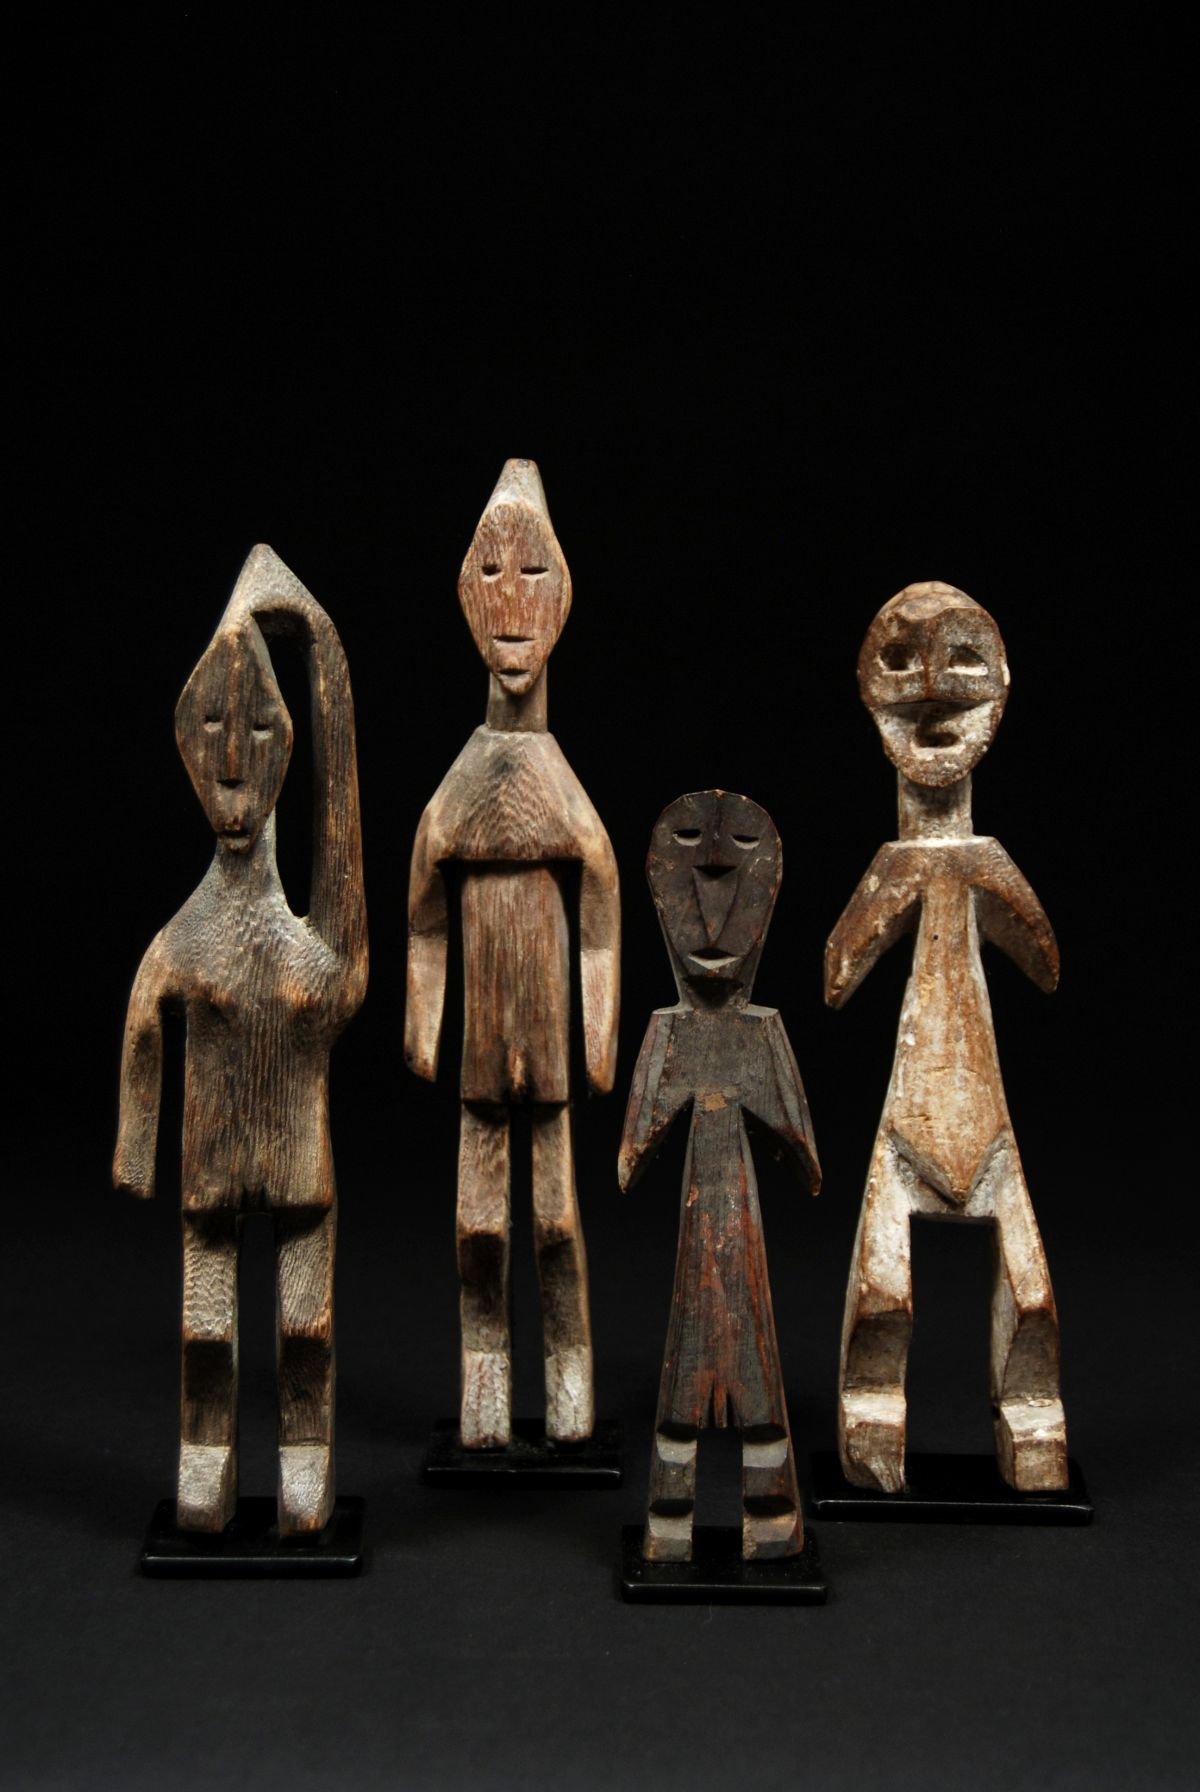 Africa | Ancestor Figures from the Adan people of Togo | Wood | 20th century